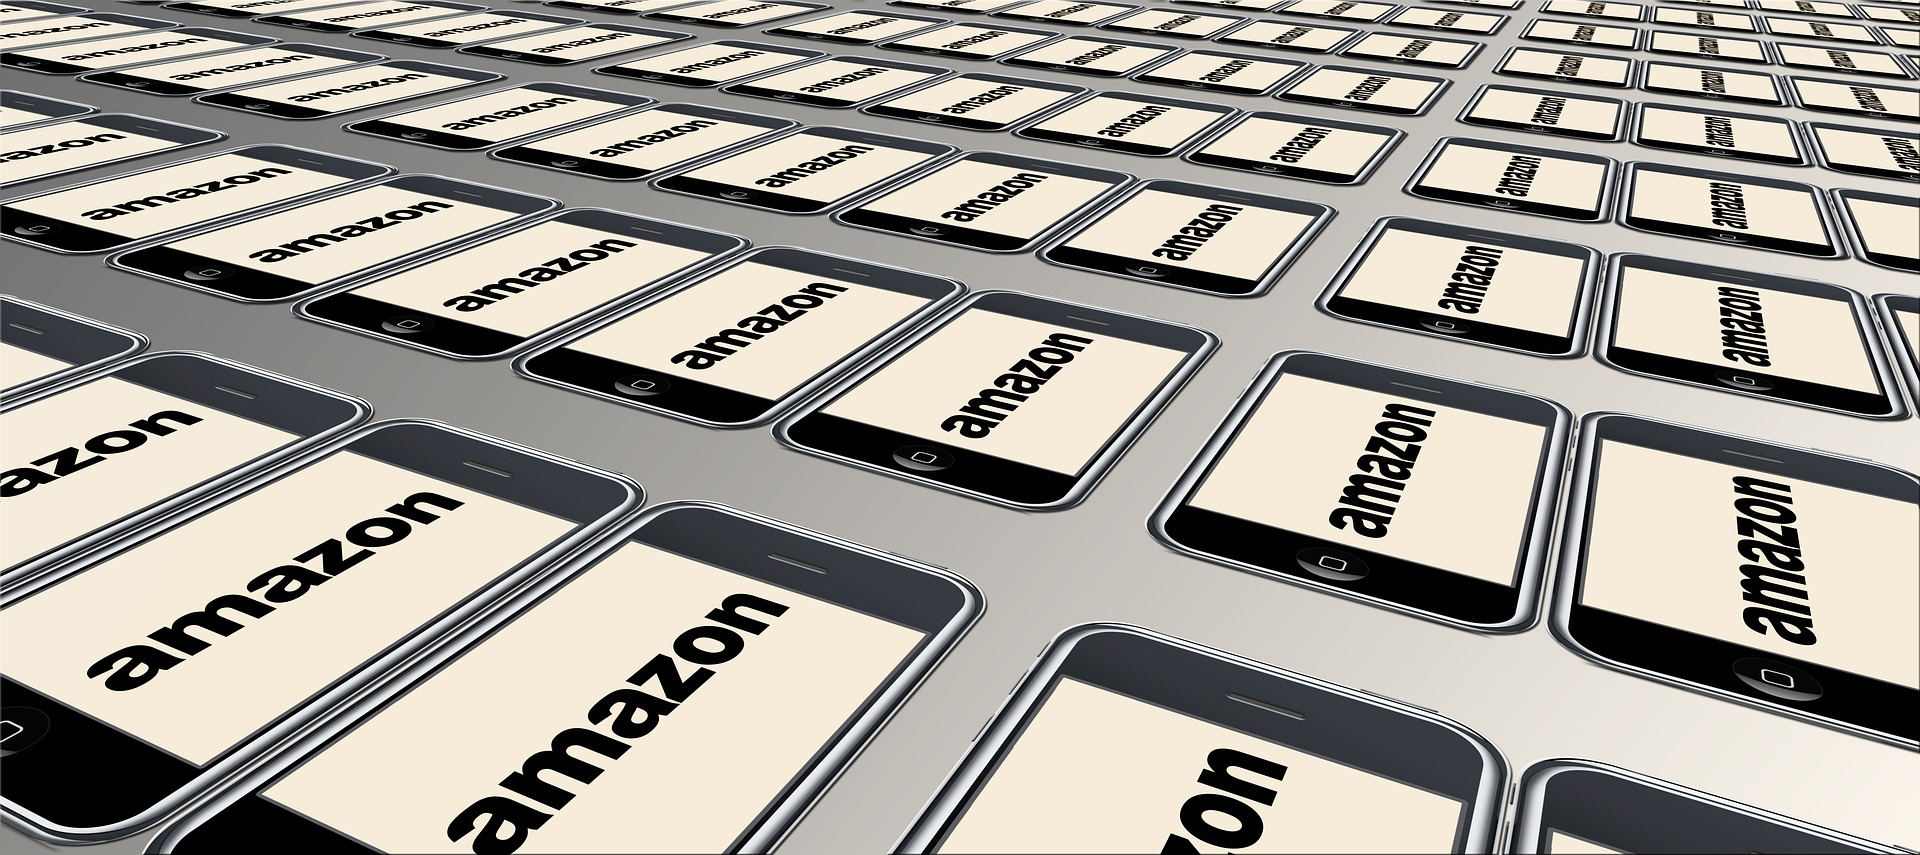 Amazon franchit la barre des 1000 milliards de dollars en bourse